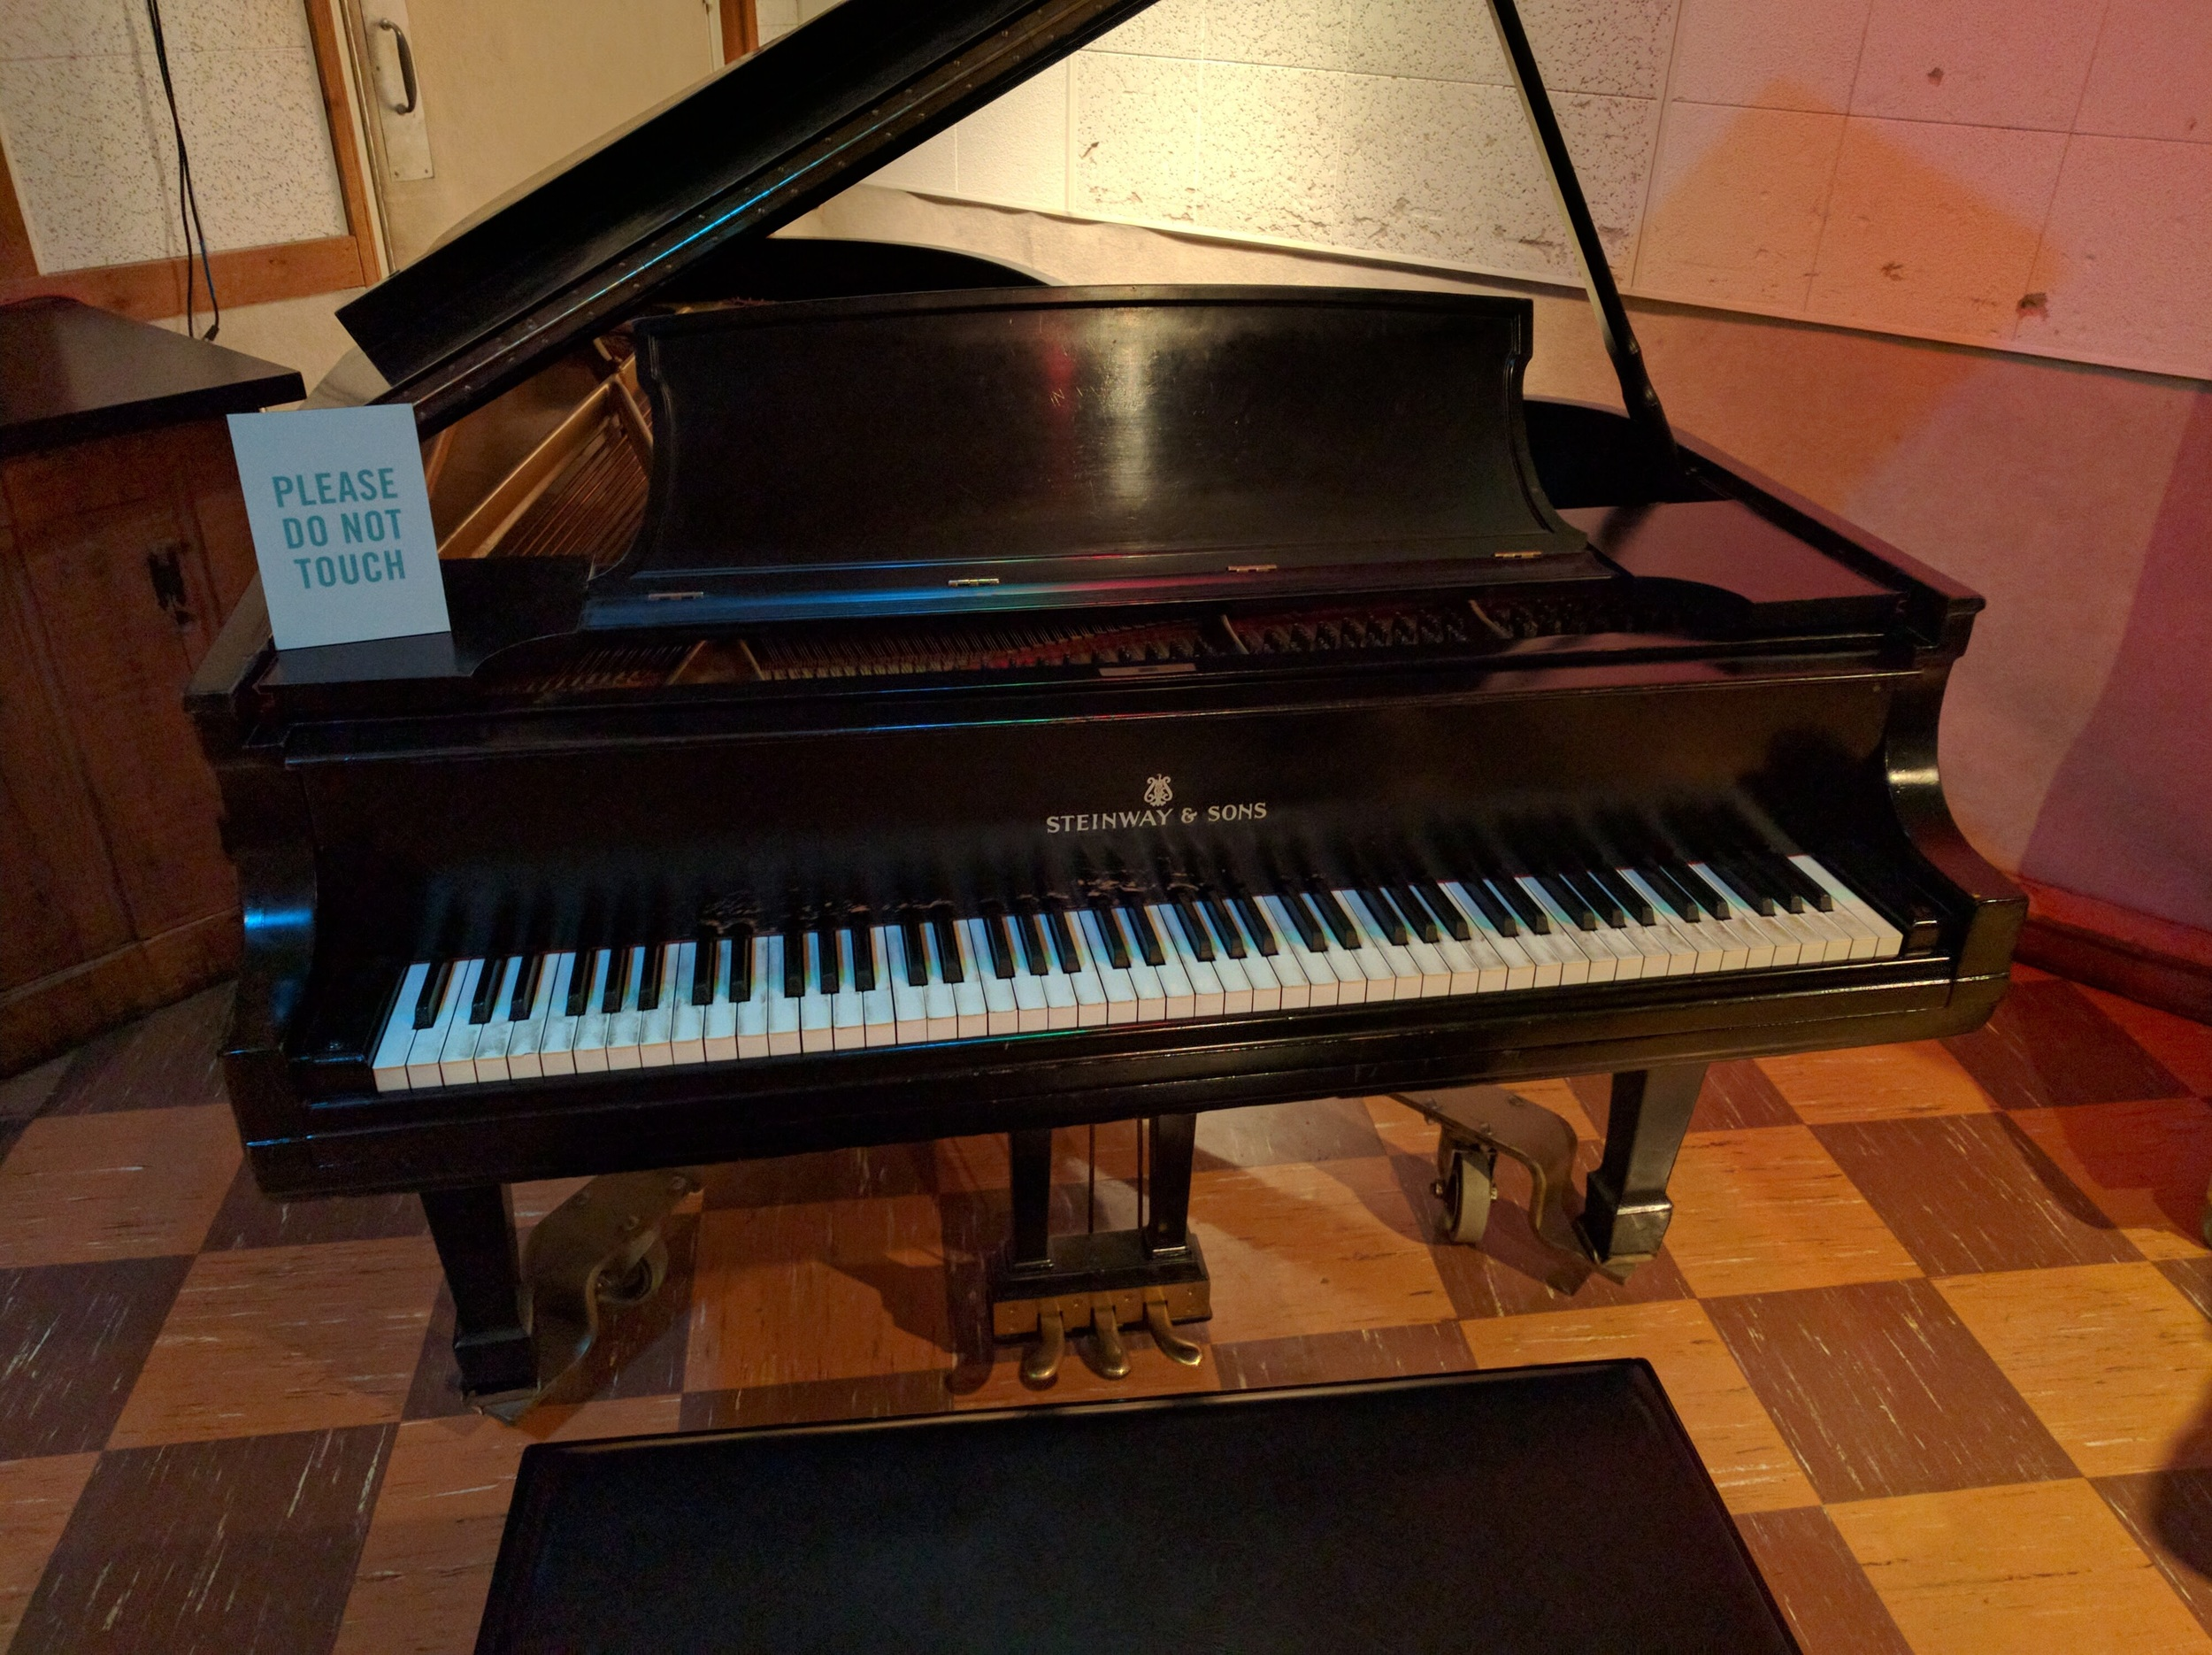 Piano at RCA Studio B, the saem piano Elvis, Paul McCartney and many others have played